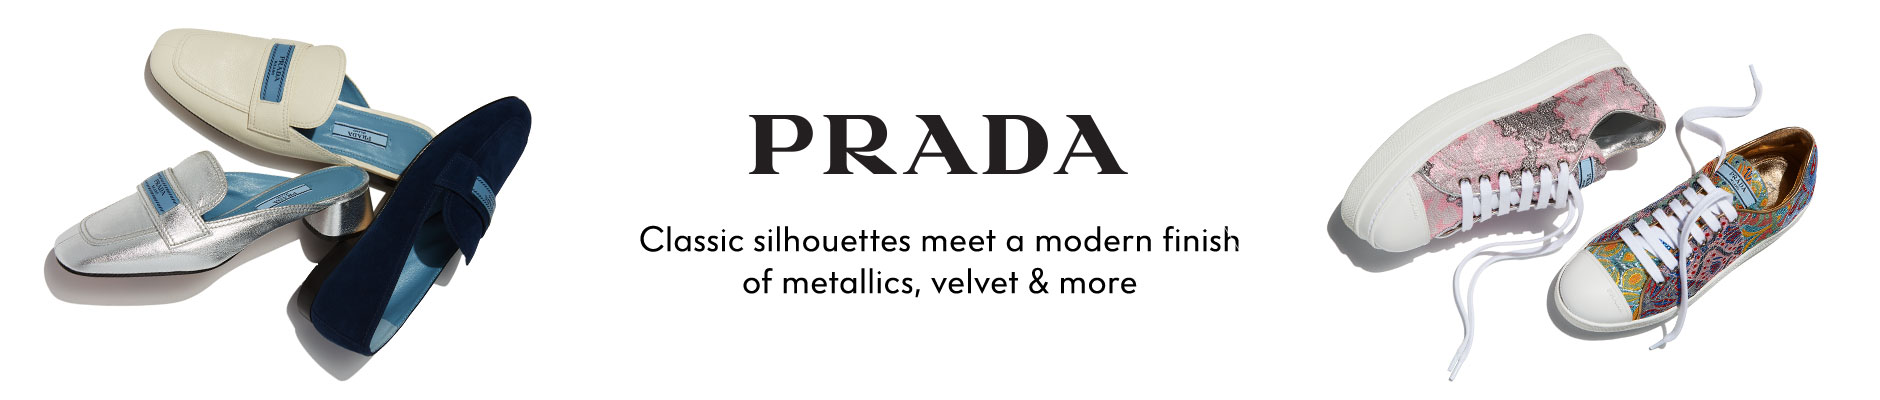 Prada - Classic silhouettes meet a modern finish of metallics, velvet & more